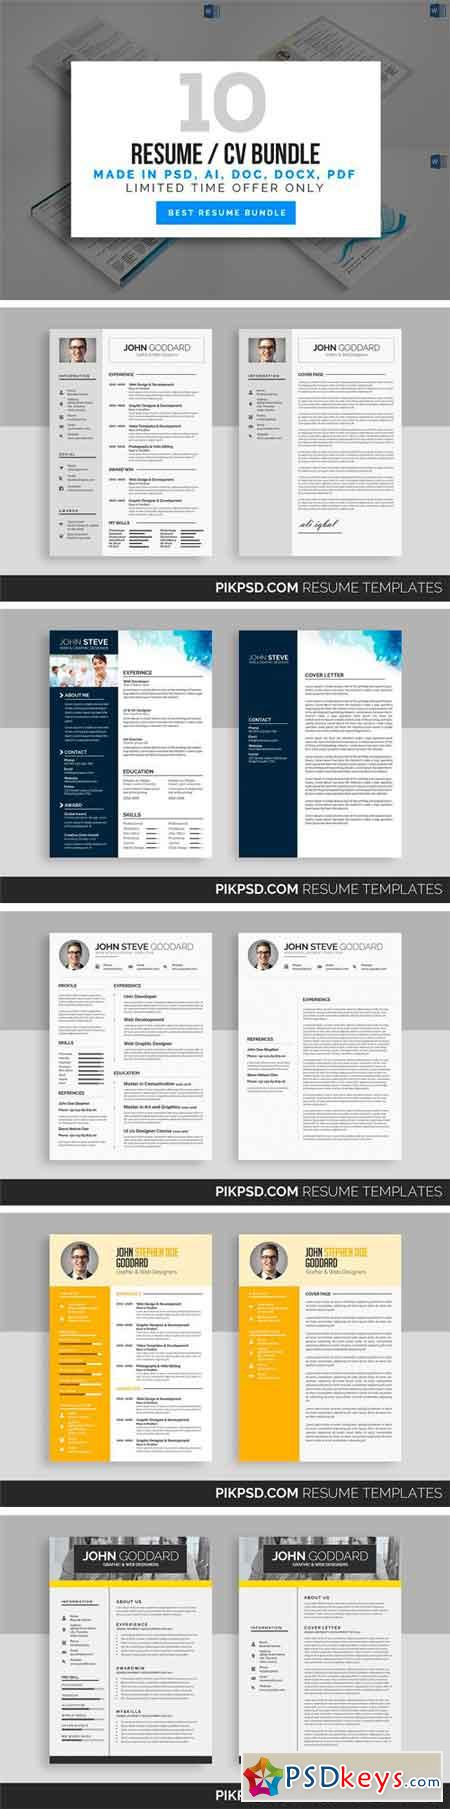 Executive Resume Service Pdf Cv  Free Download Photoshop Vector Stock Image Via Torrent  Key Skills For Resume Excel with Customer Service Cashier Resume Pdf  Resume Cv Bundle  Free Resume Builder And Print Excel